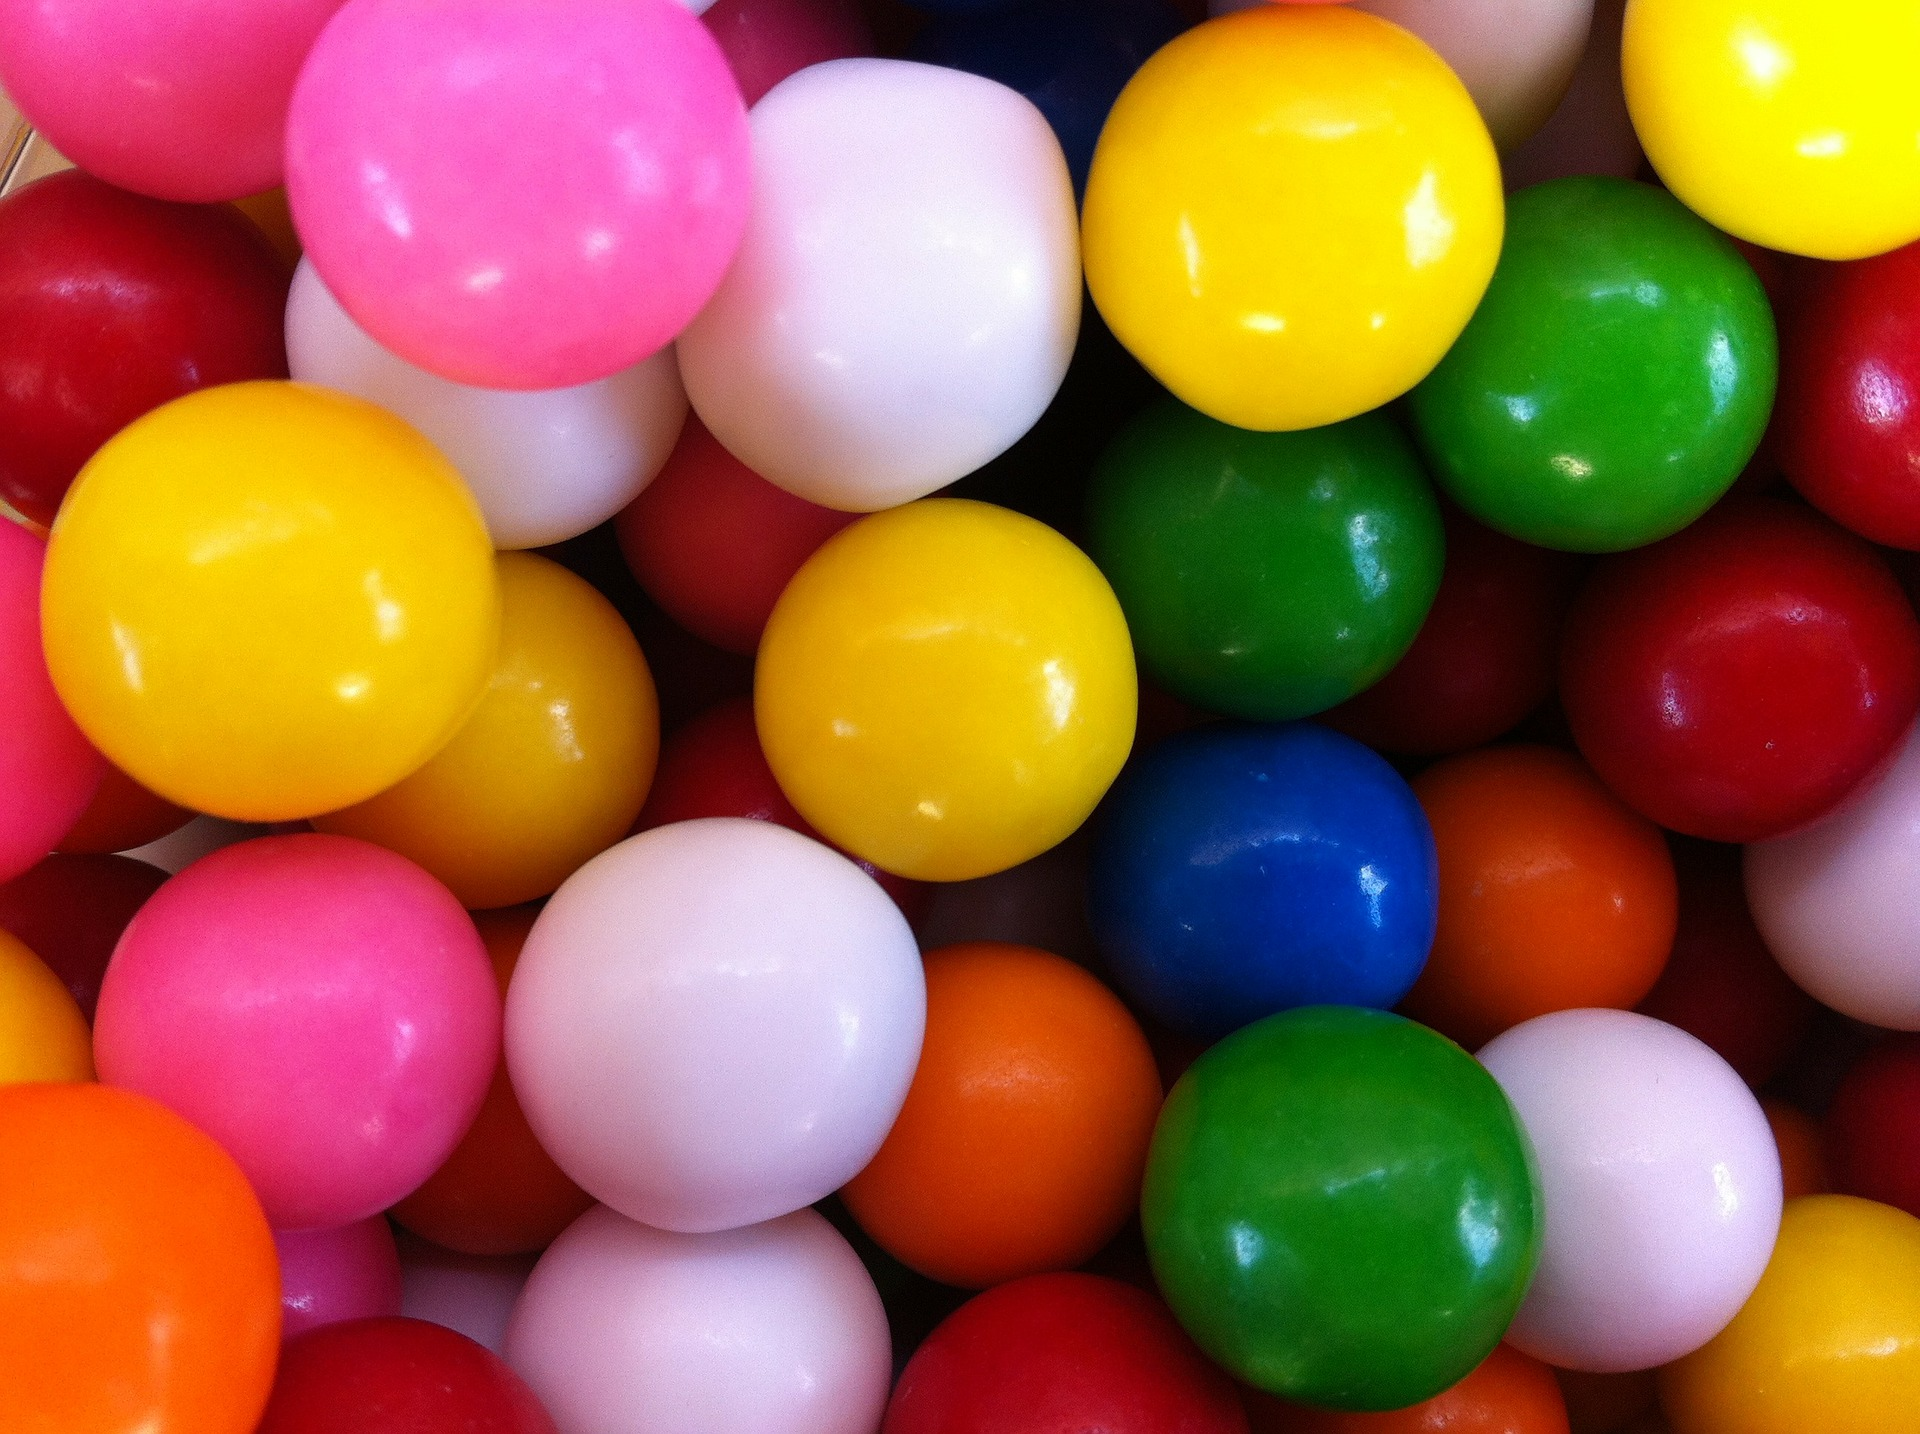 close-up of a pile of gum balls